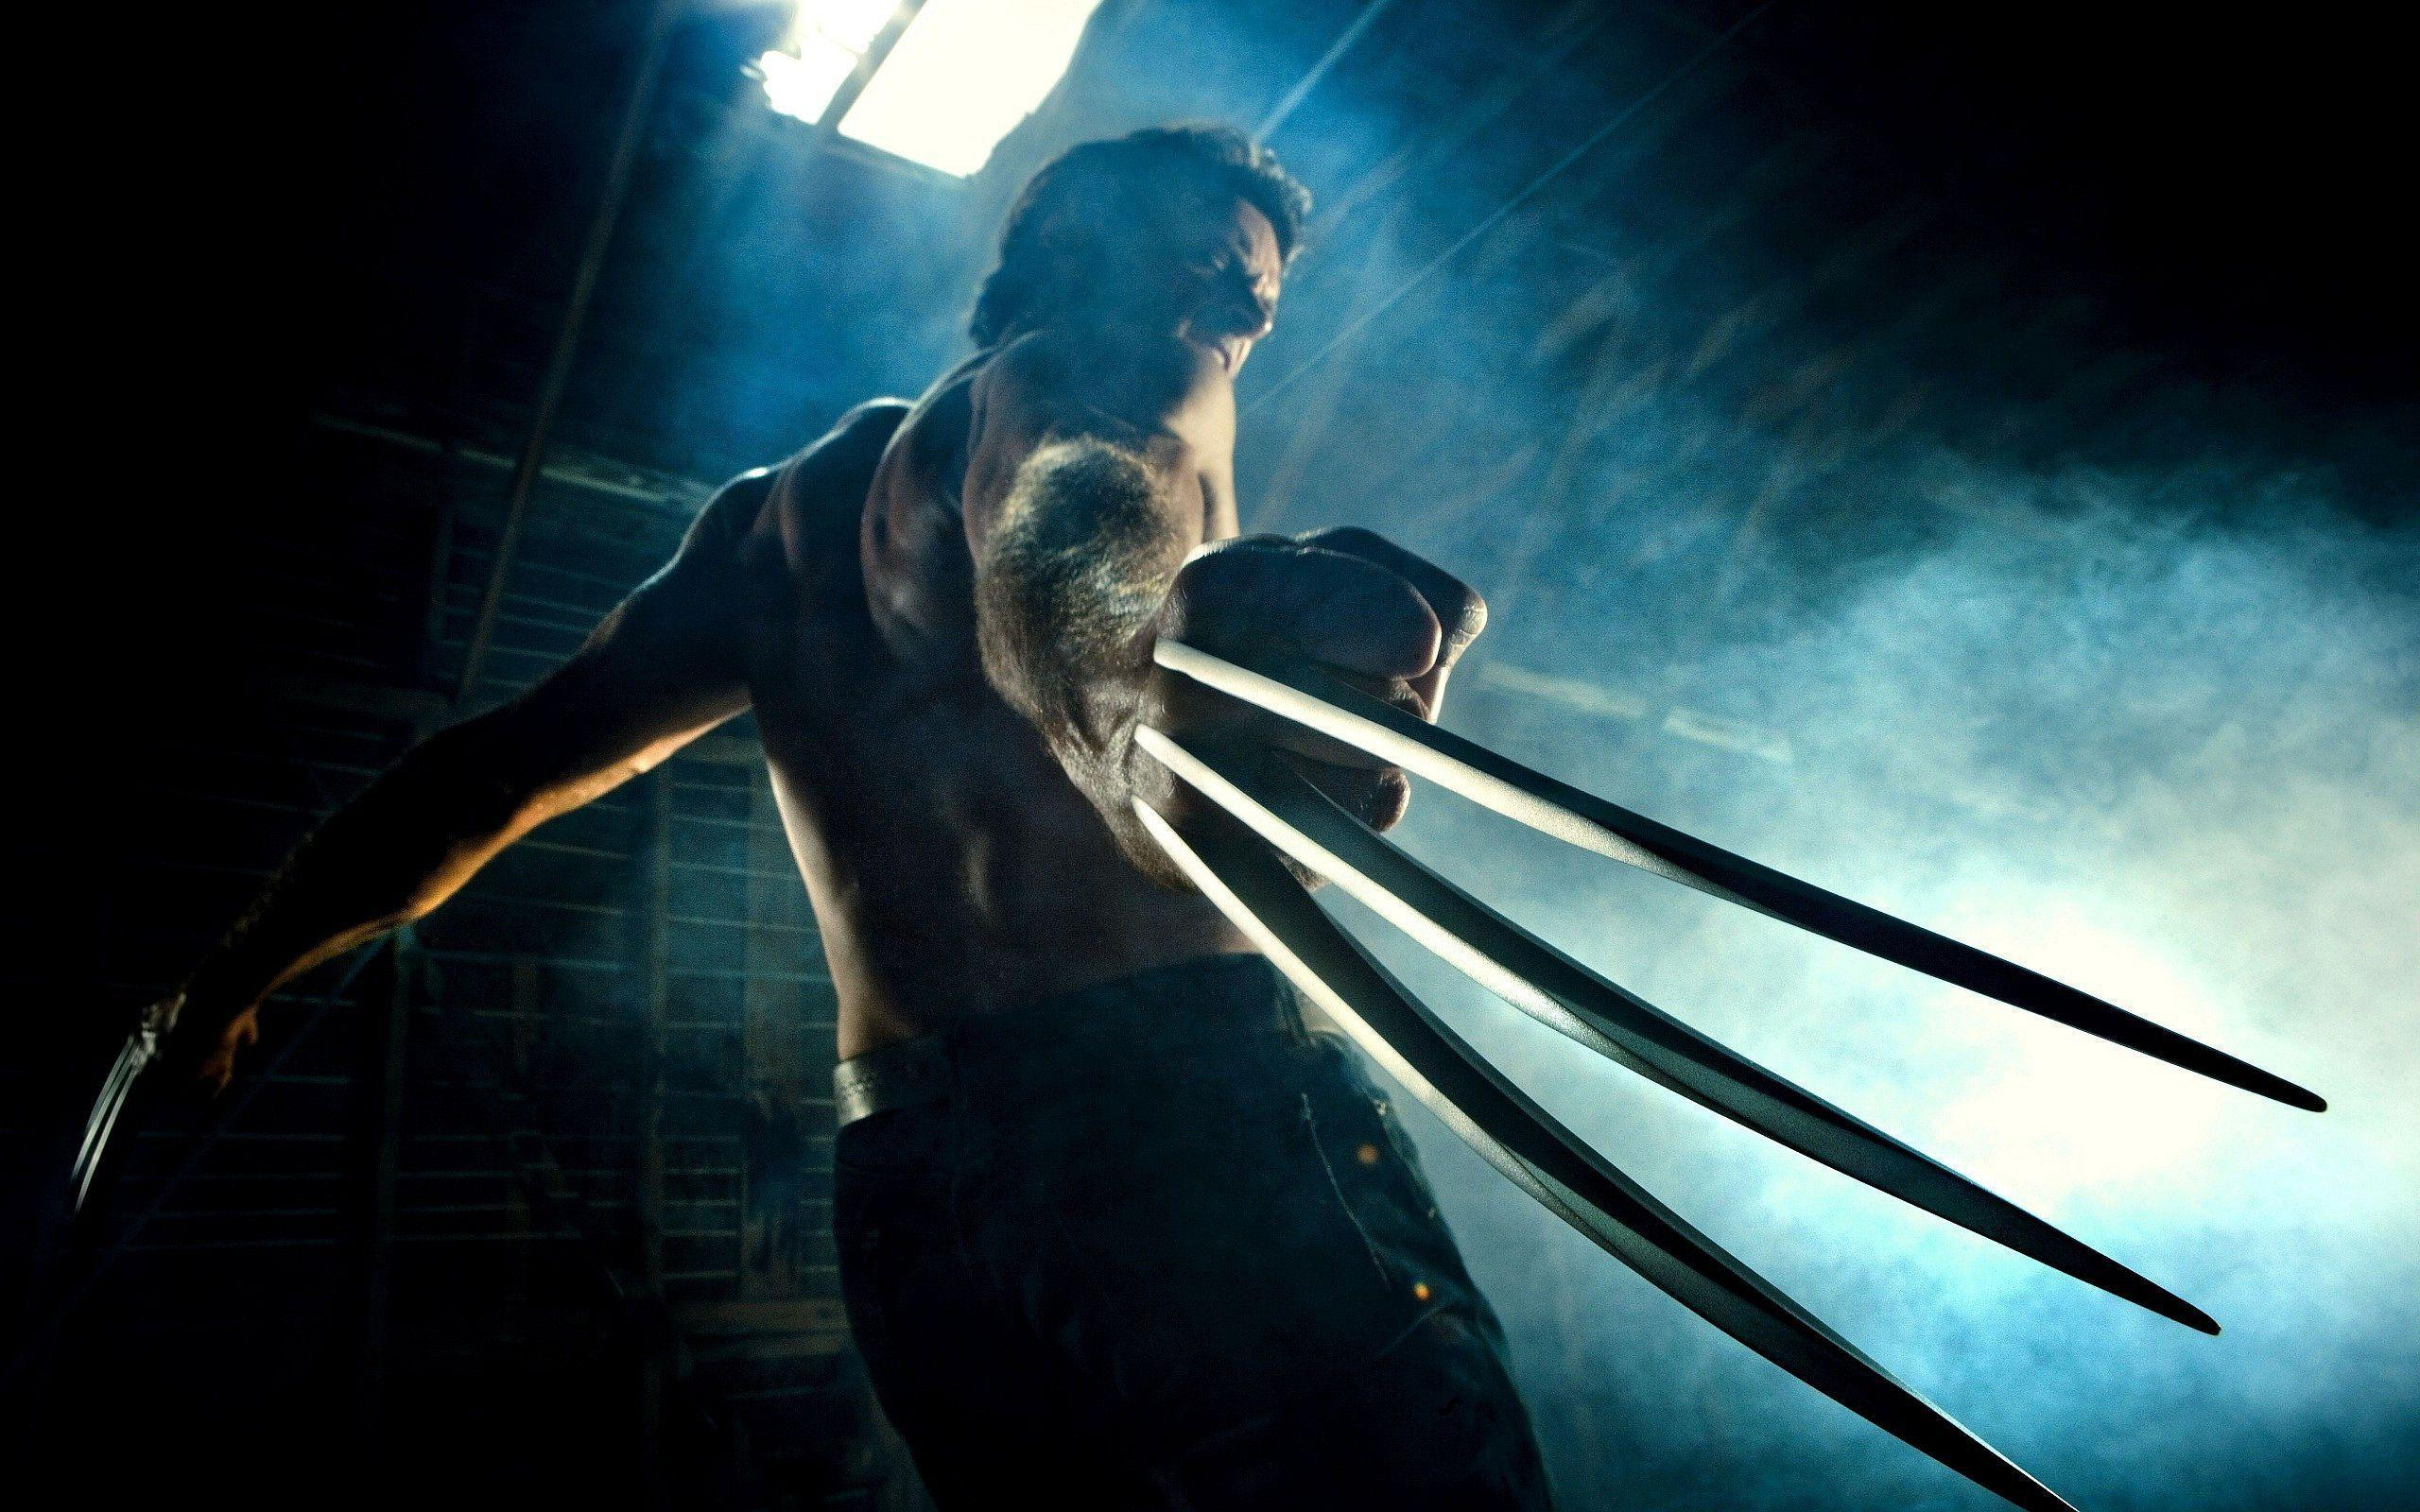 HD wolverine wallpaper hd / Wallpaper Database